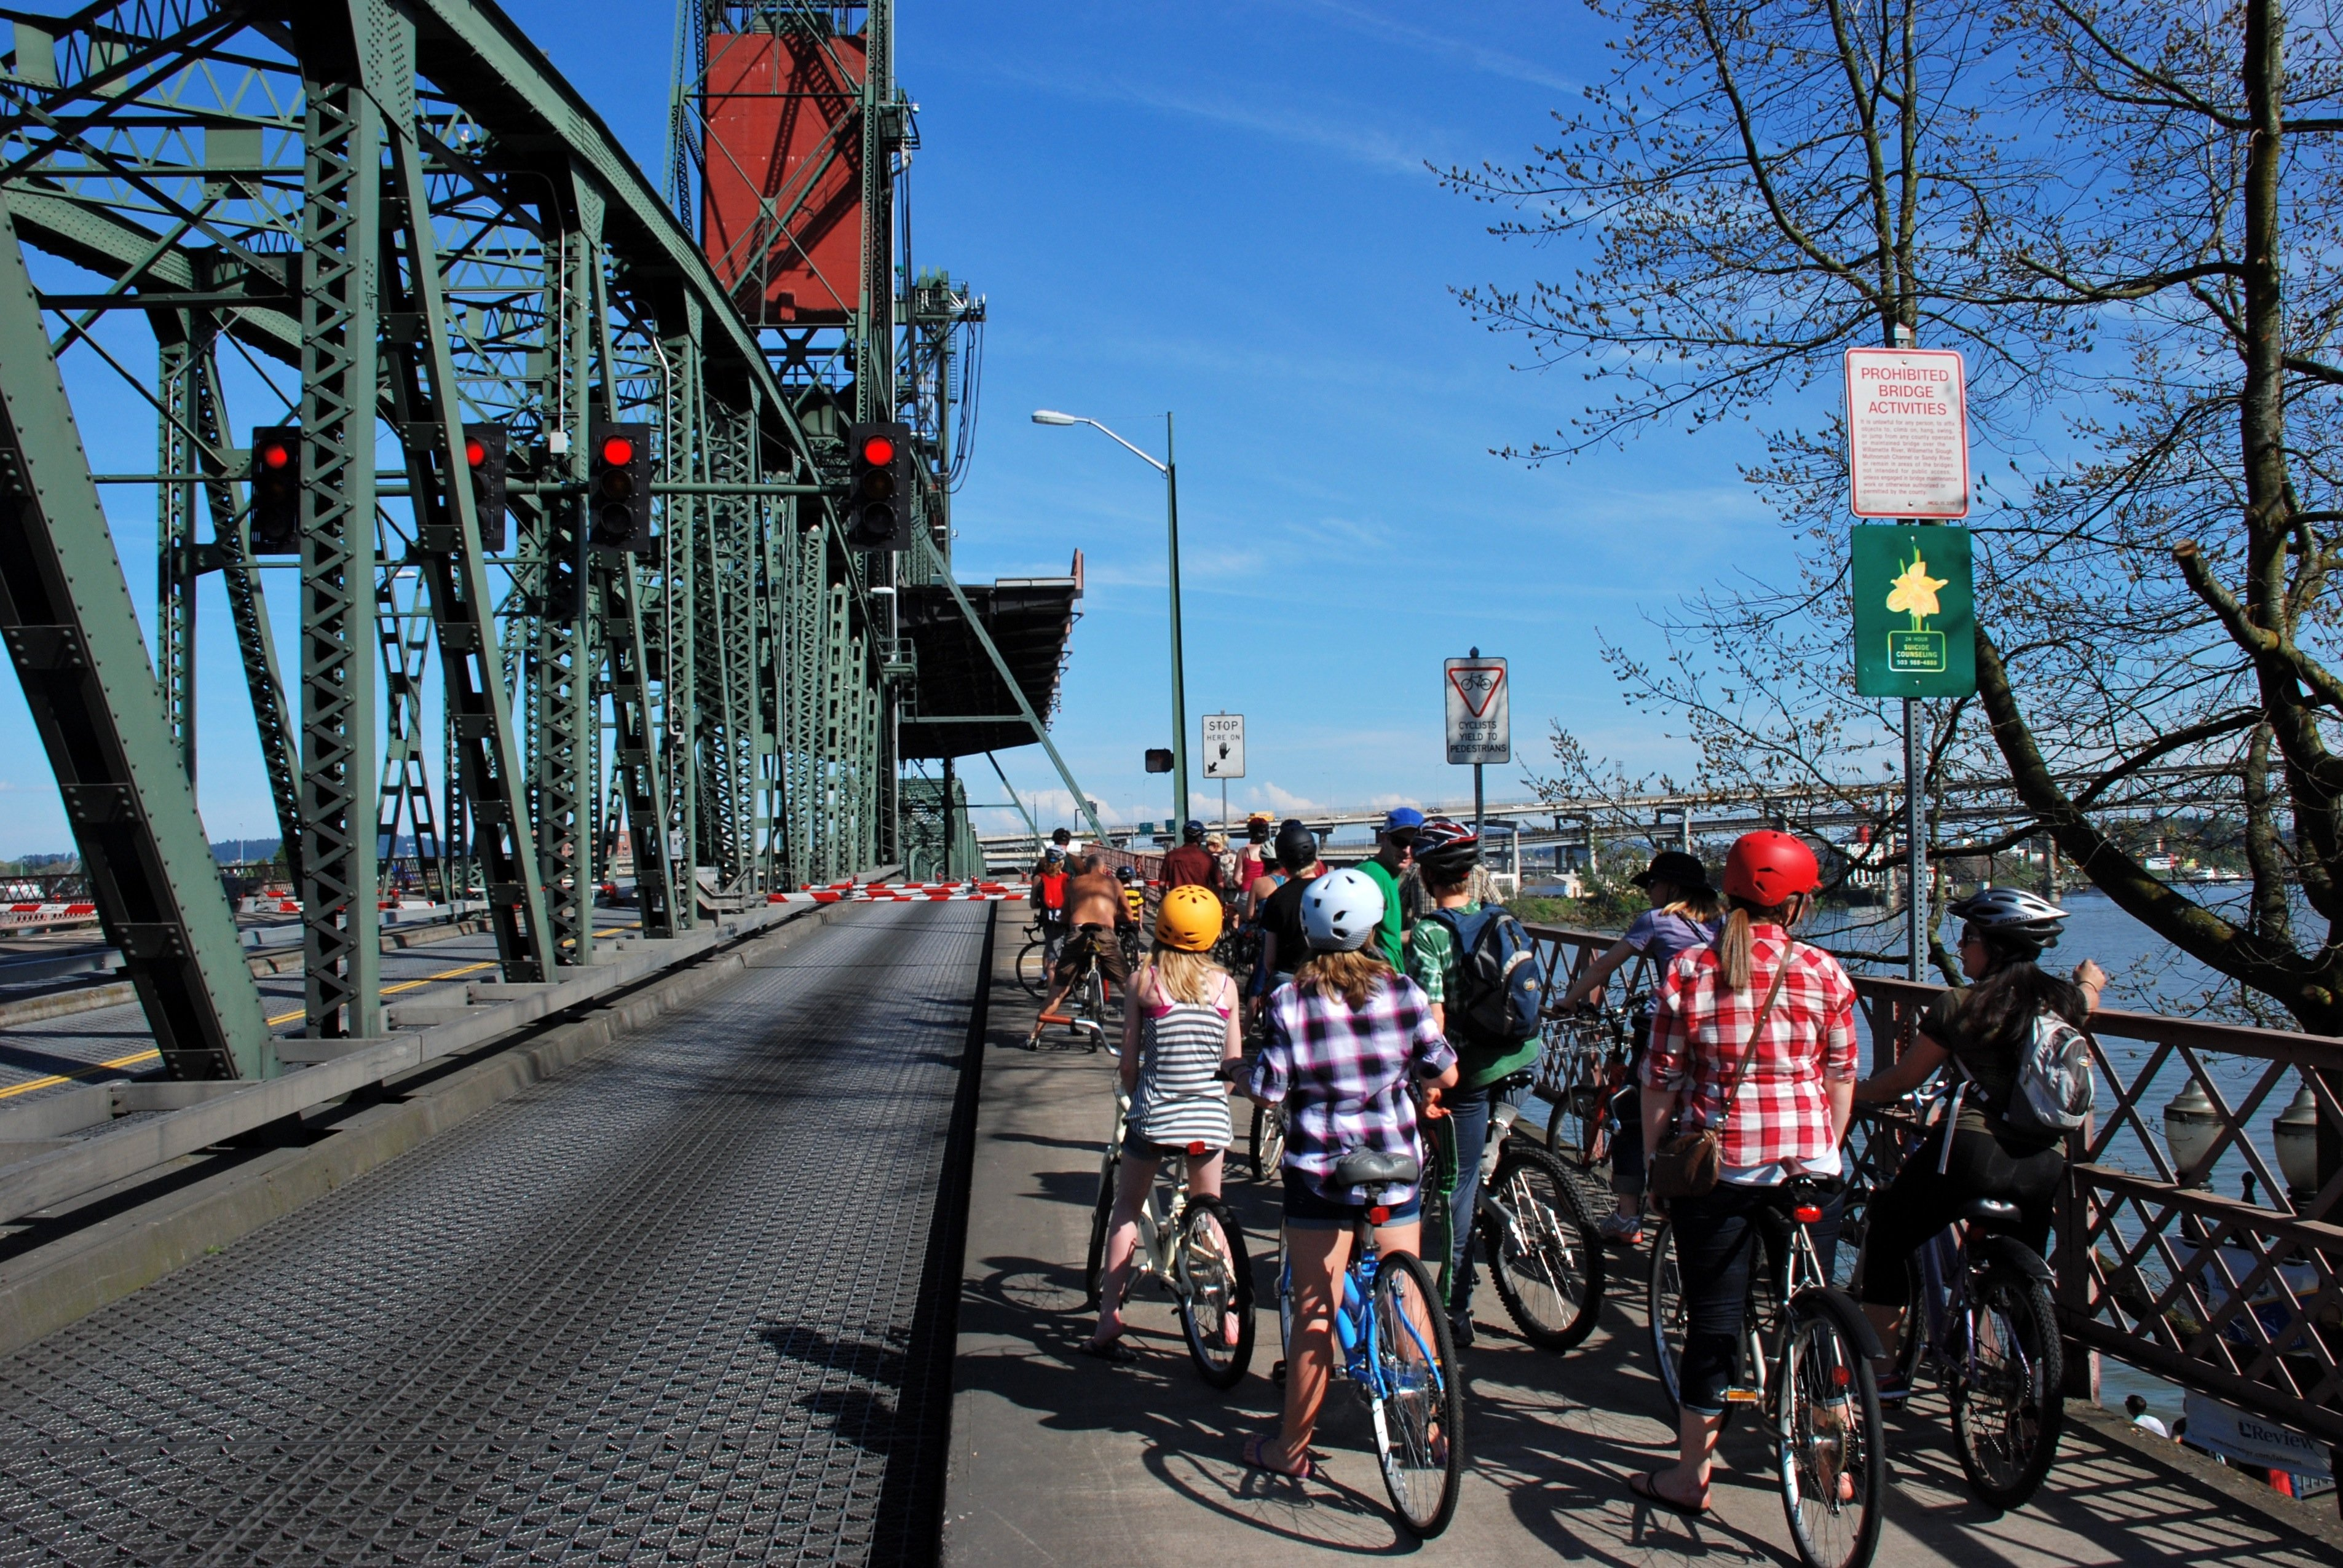 A group of cyclists waiting to cross the Hawthorne Bridge on a sunny day in Portland.